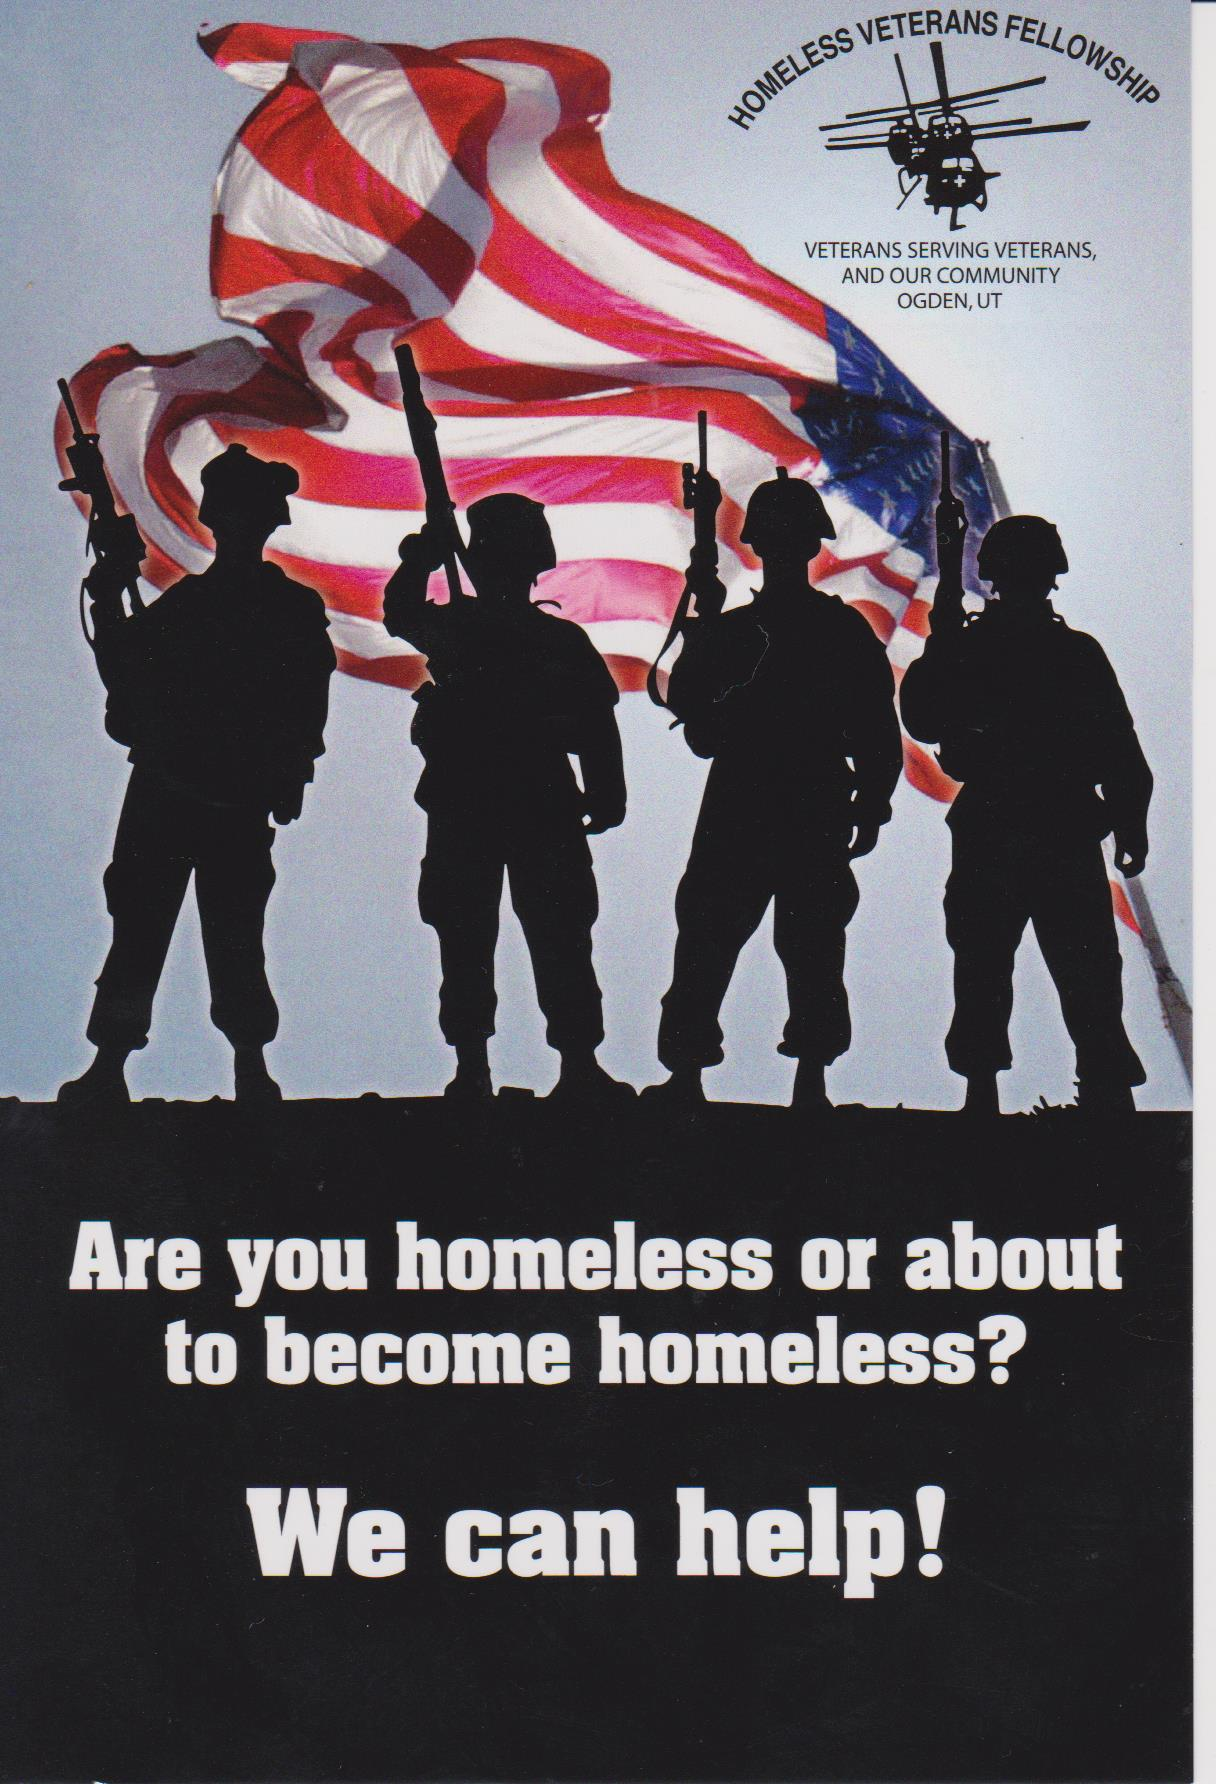 Program Information/Services | Homeless Veterans Fellowship